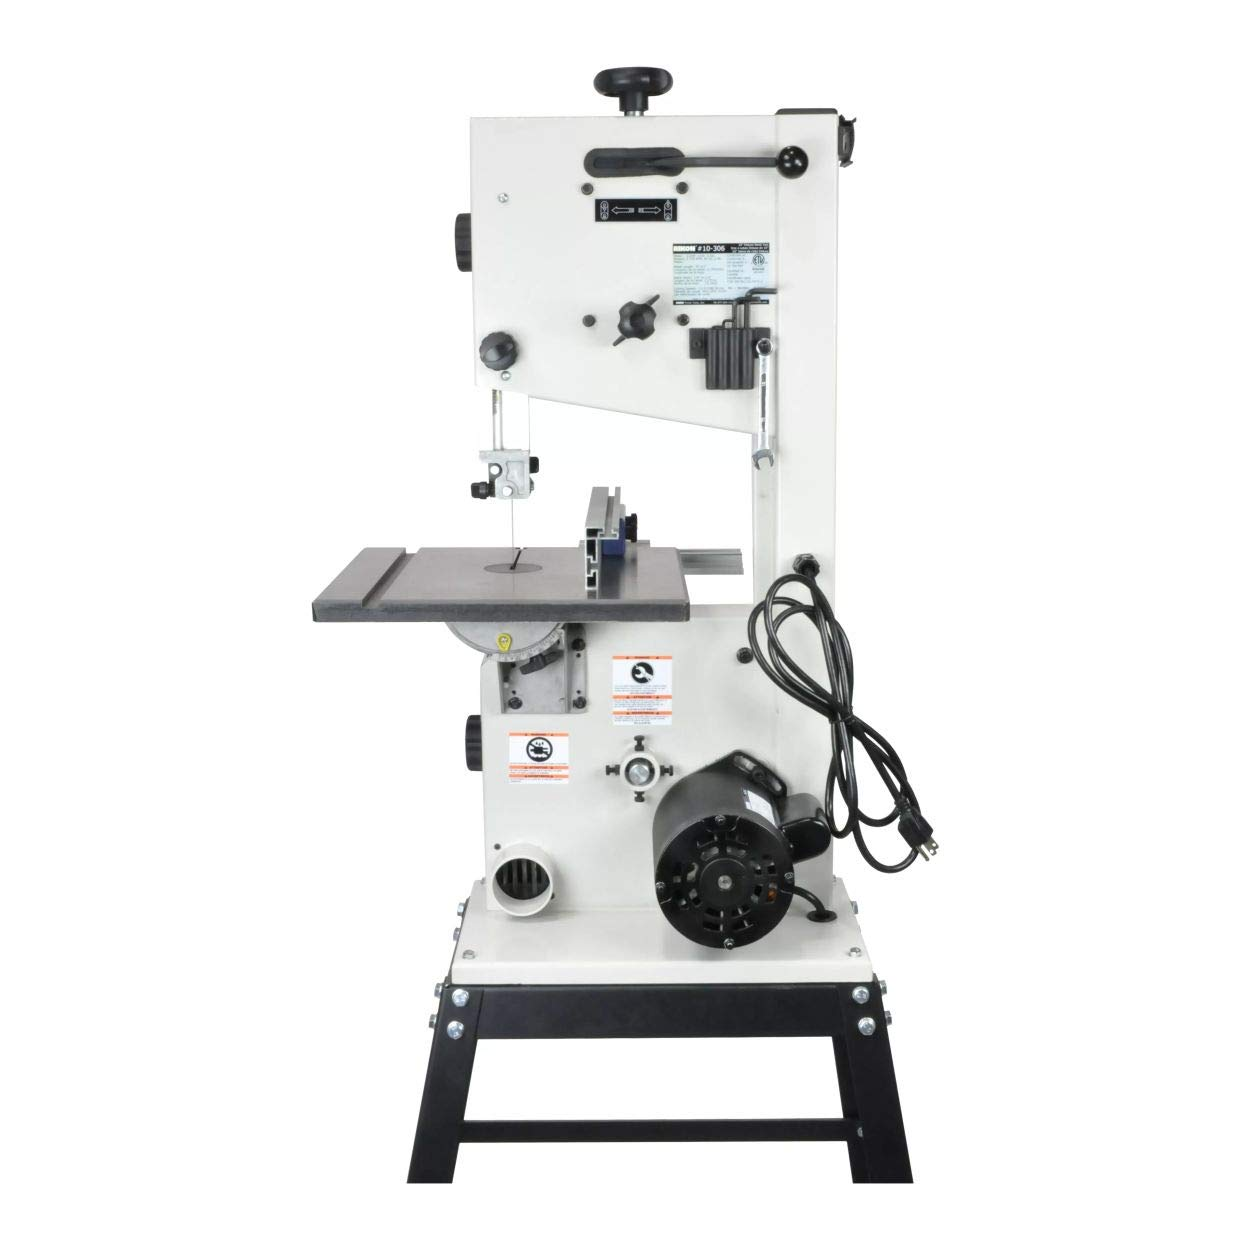 Rikon 10-306 10″ Deluxe Bandsaw by Rikon (Image #2)